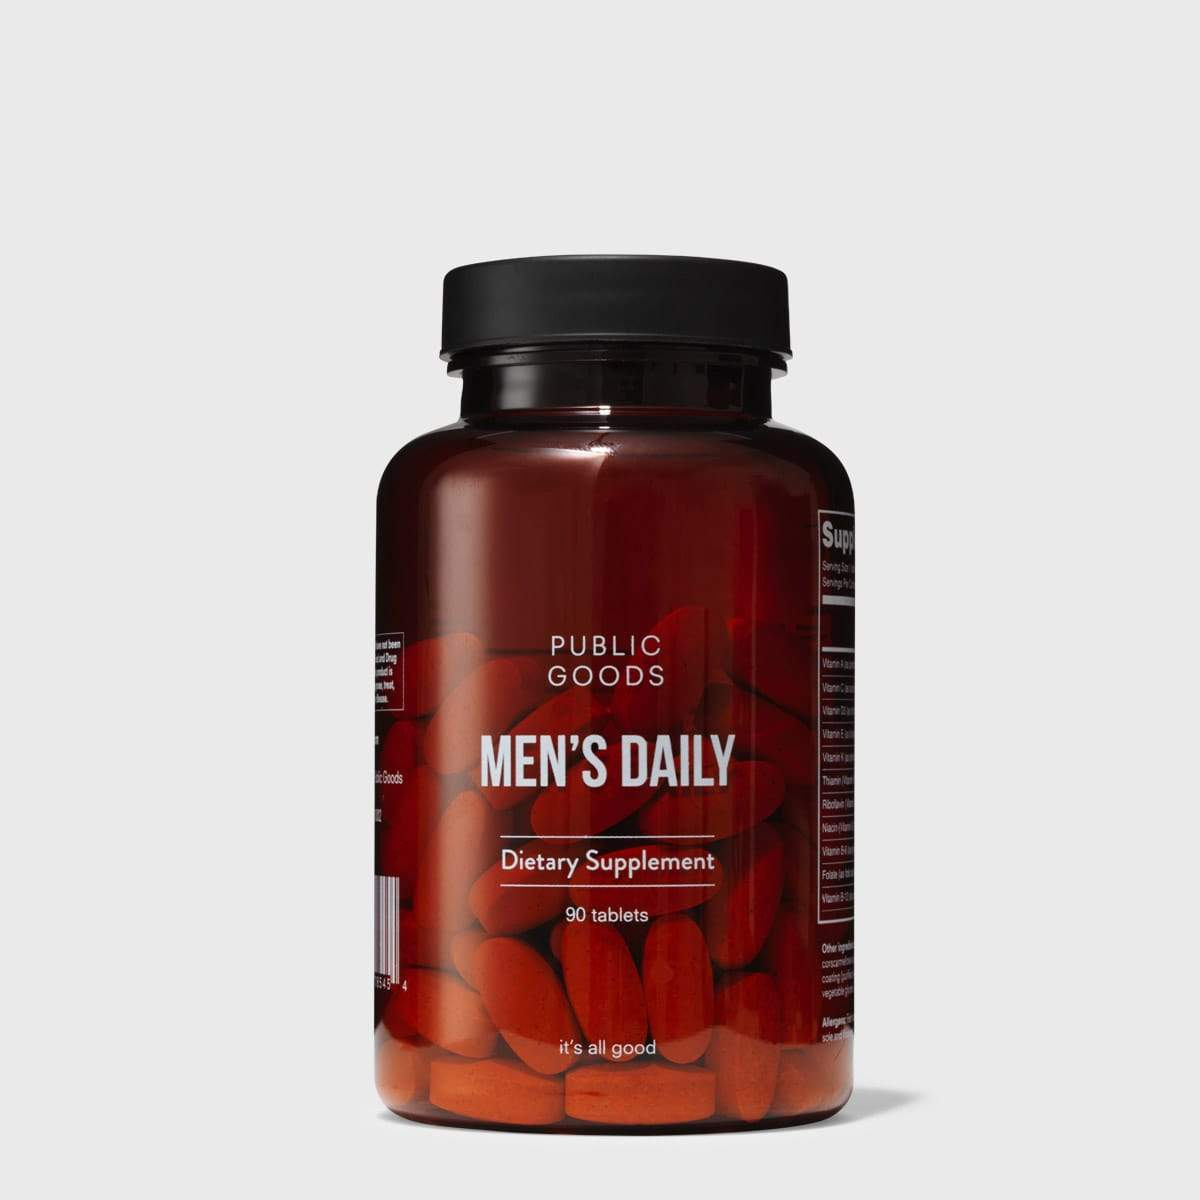 Public Goods Supplement Men's Daily Multivitamin